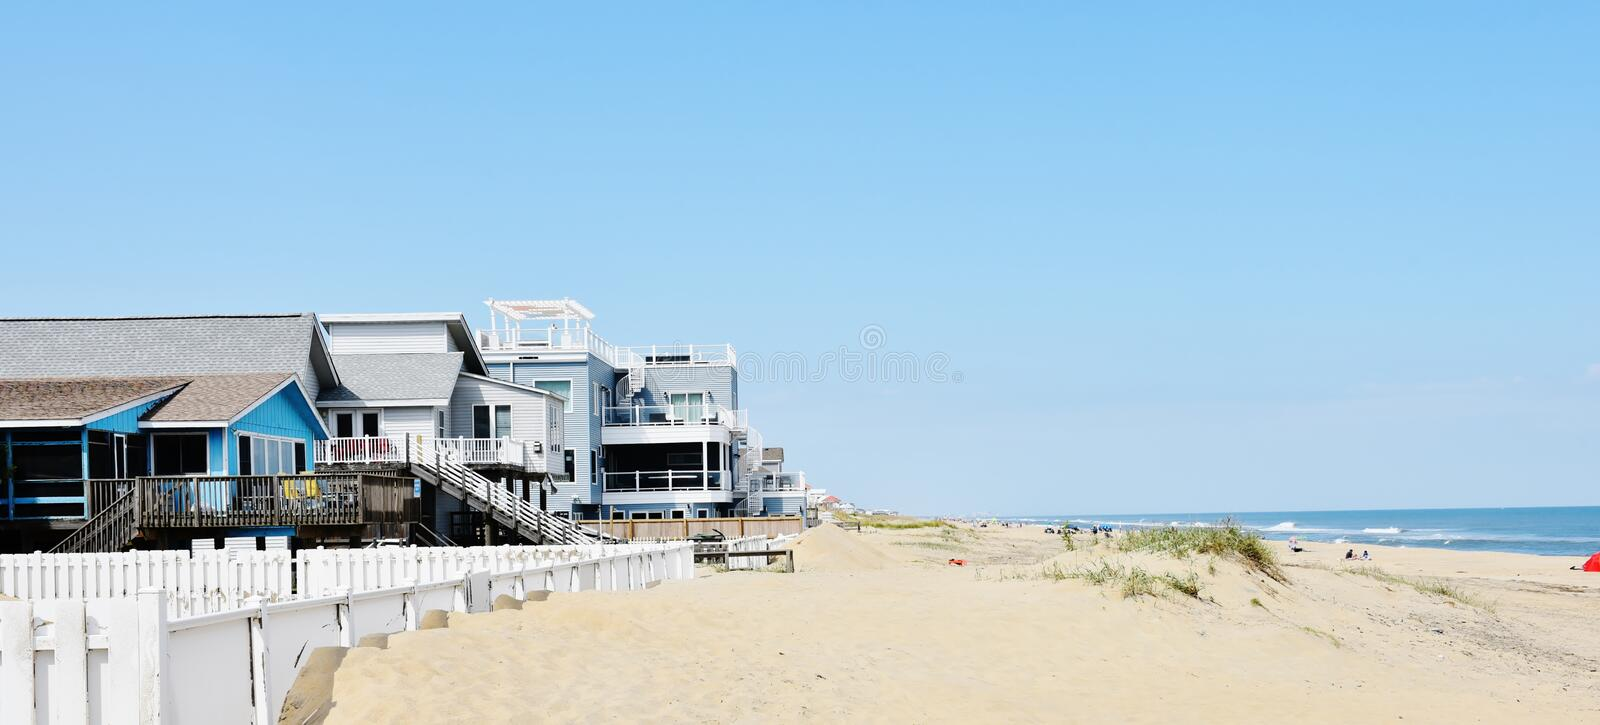 Eastern shore virginia beach oceanfront area. There are miles of oceanfront sand beaches area in eastern shore of Virginia state of USA, its not place where royalty free stock photos